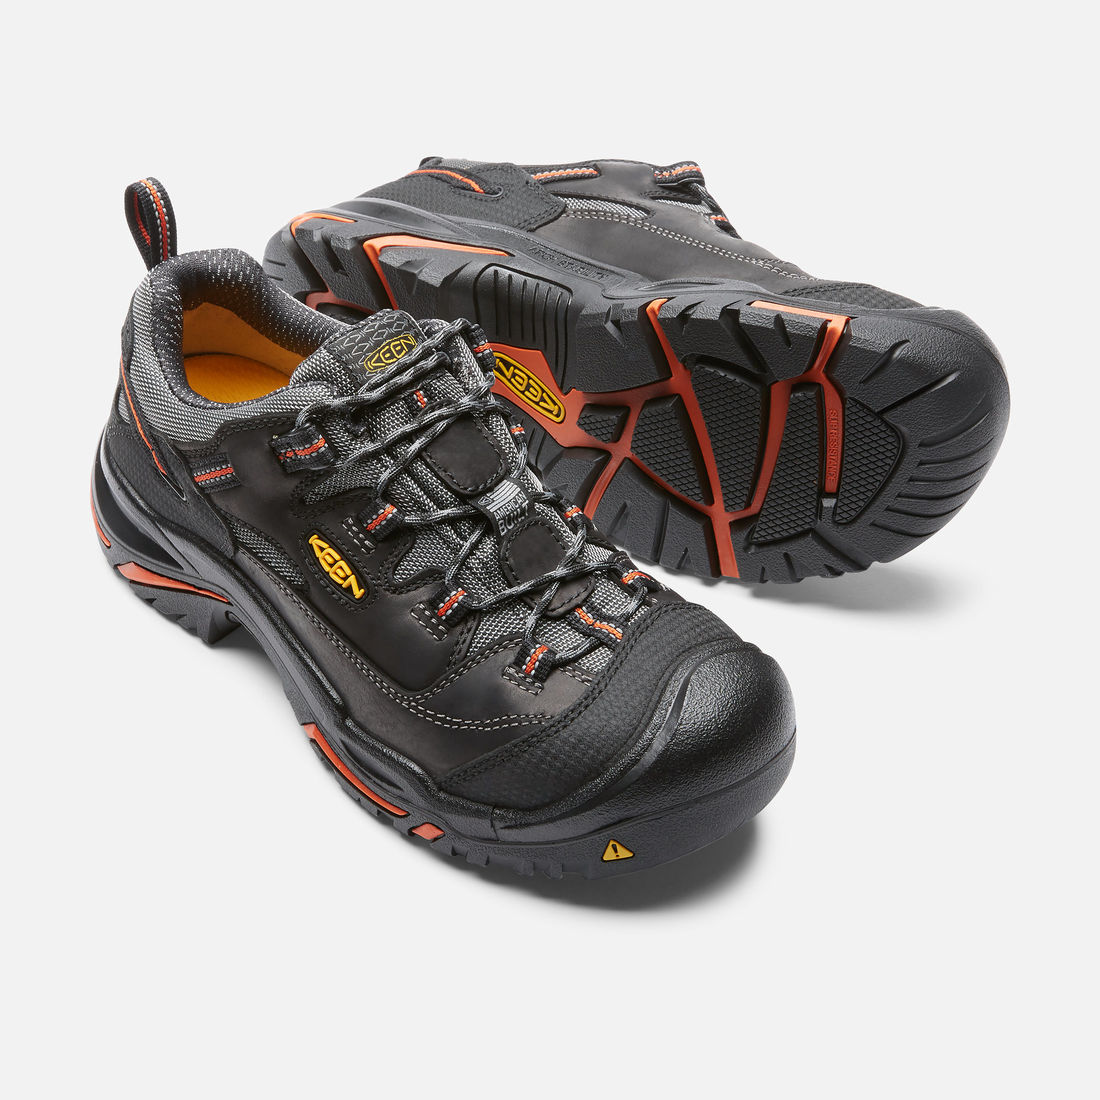 Keen Shoes Pro Deal